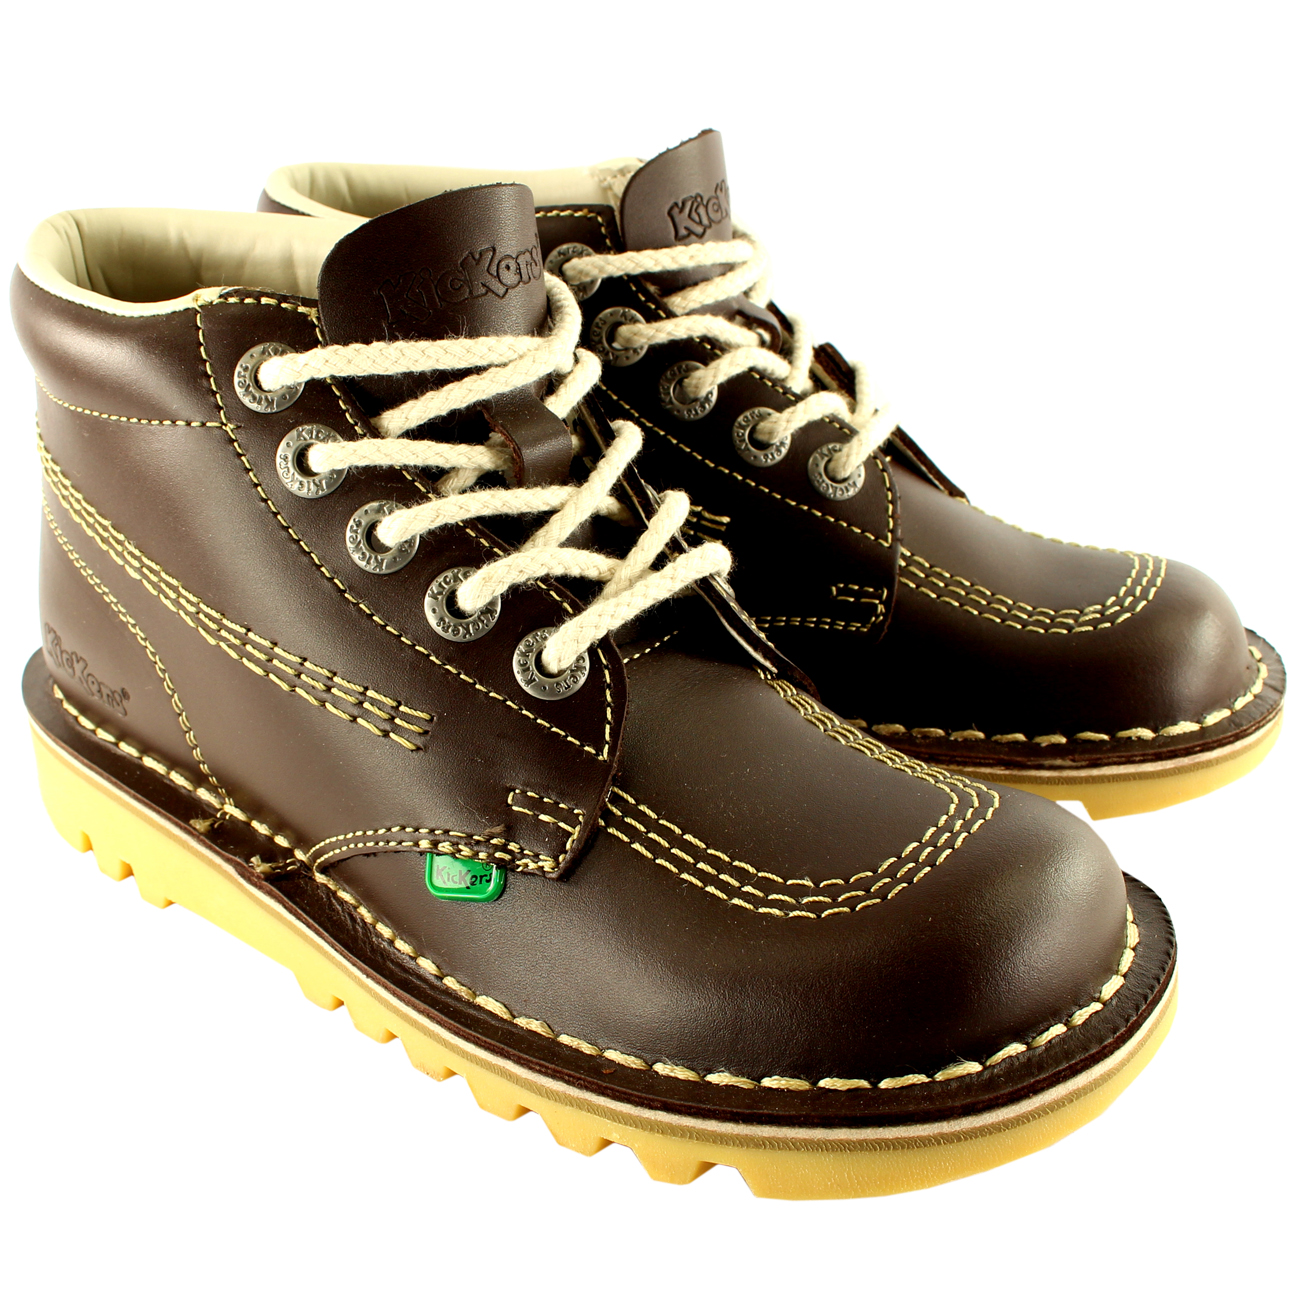 Womens Kickers Kick Hi Classic Leather Office Work Ankle Boots Shoes US 5.5-11 | EBay